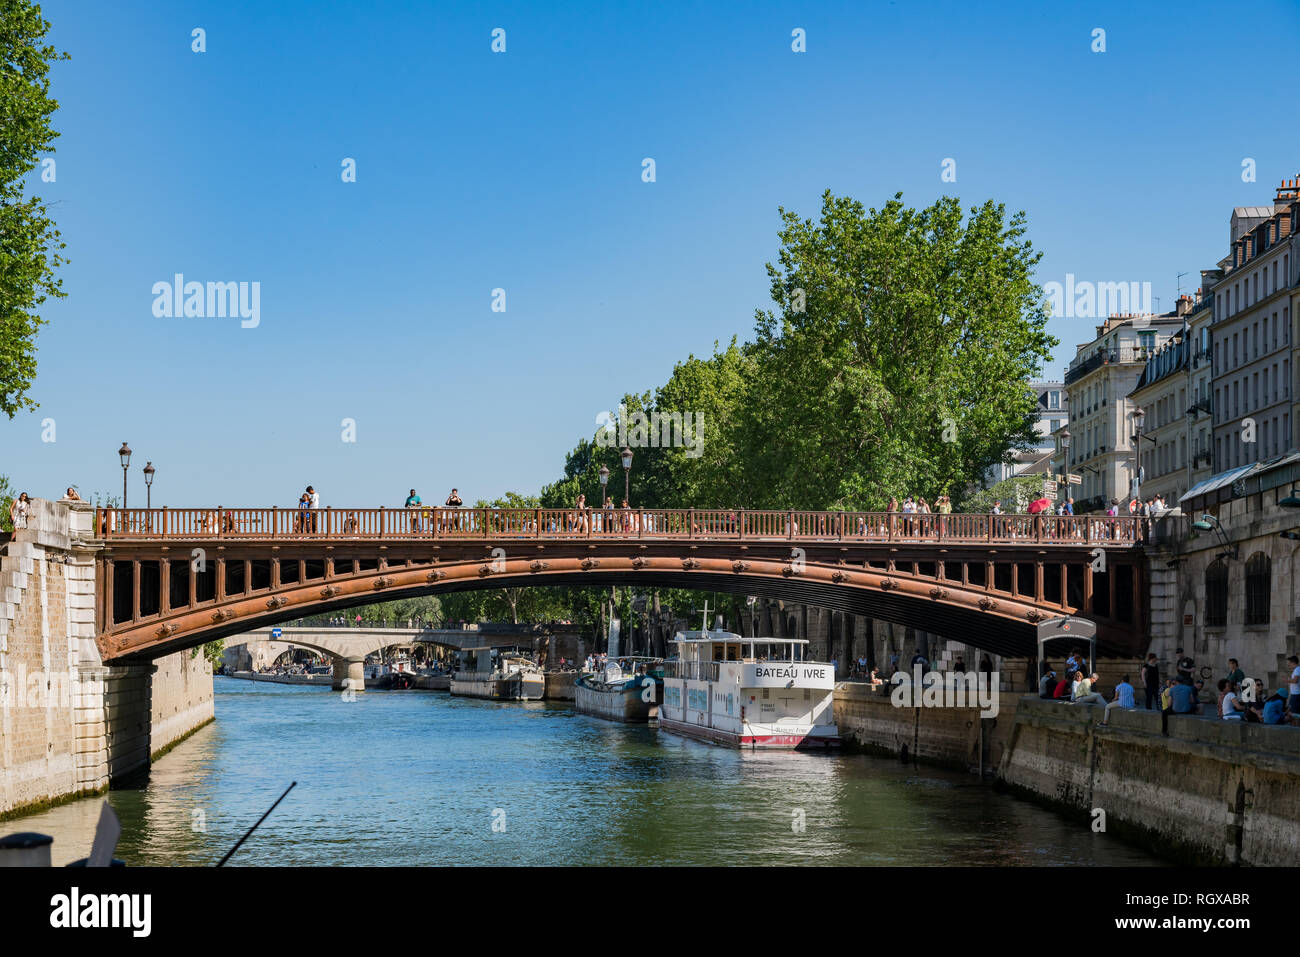 Paris, MAY 7: Pont au Double bridge and Seine river view on MAY 7, 2018 at Paris, France - Stock Image